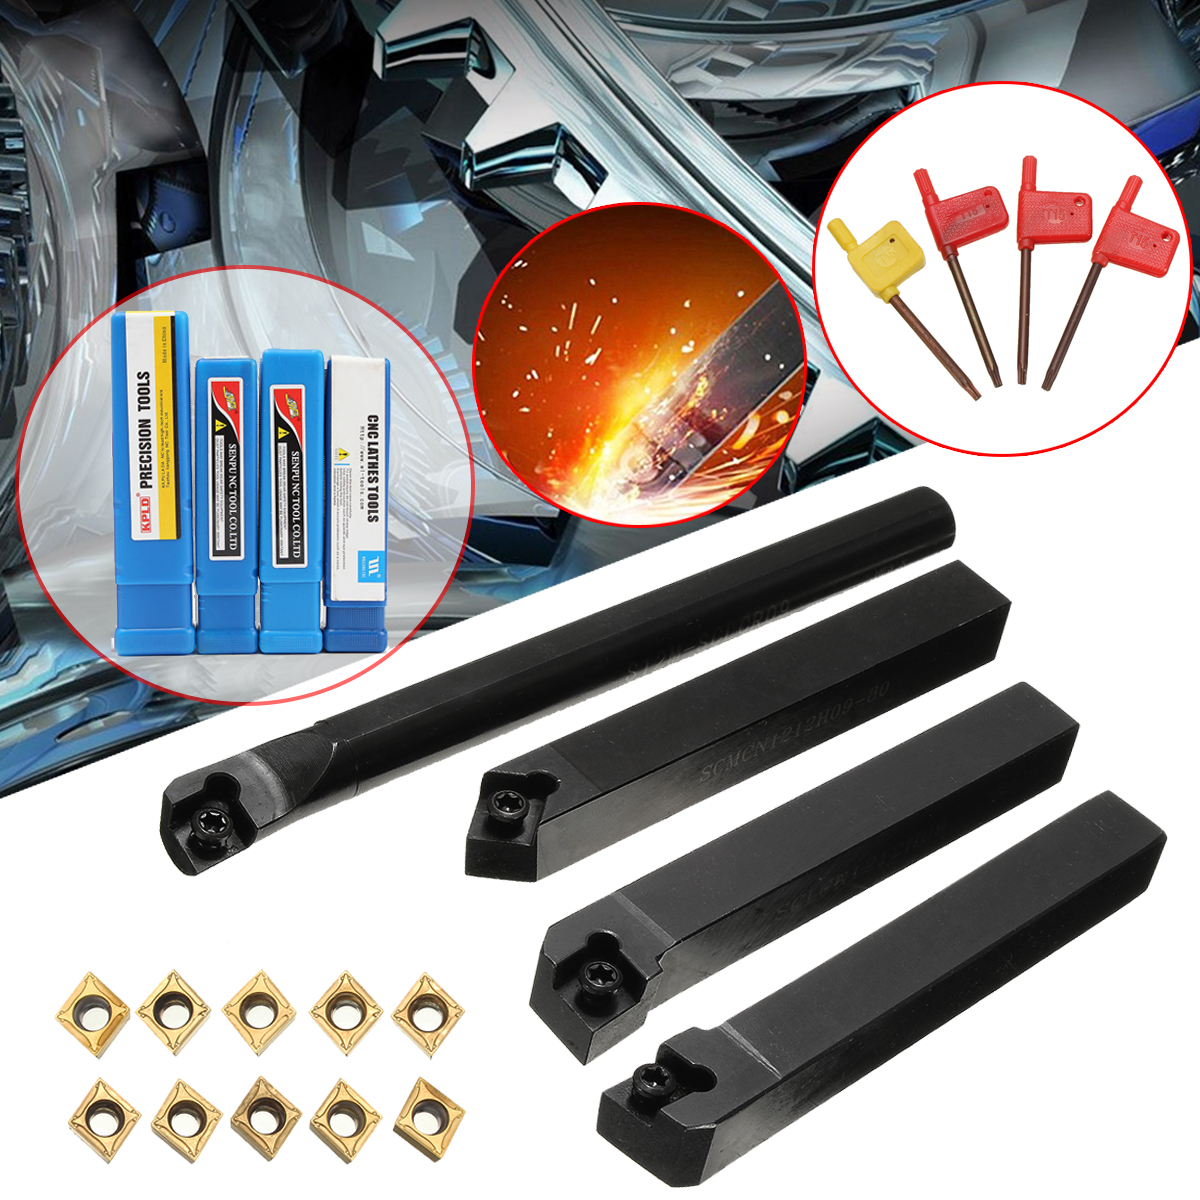 10X CCMT09T304 S12M-SCLCR09+1212H09+SCLCL+SCMCN1212H09 Lathe Turning Tool Holder Set Machine Tools T15 Wrench Carbide Insert Kit solid carbide c12q sclcr09 180mm hot sale sclcr lathe turning holder boring bar insert for semi finishing